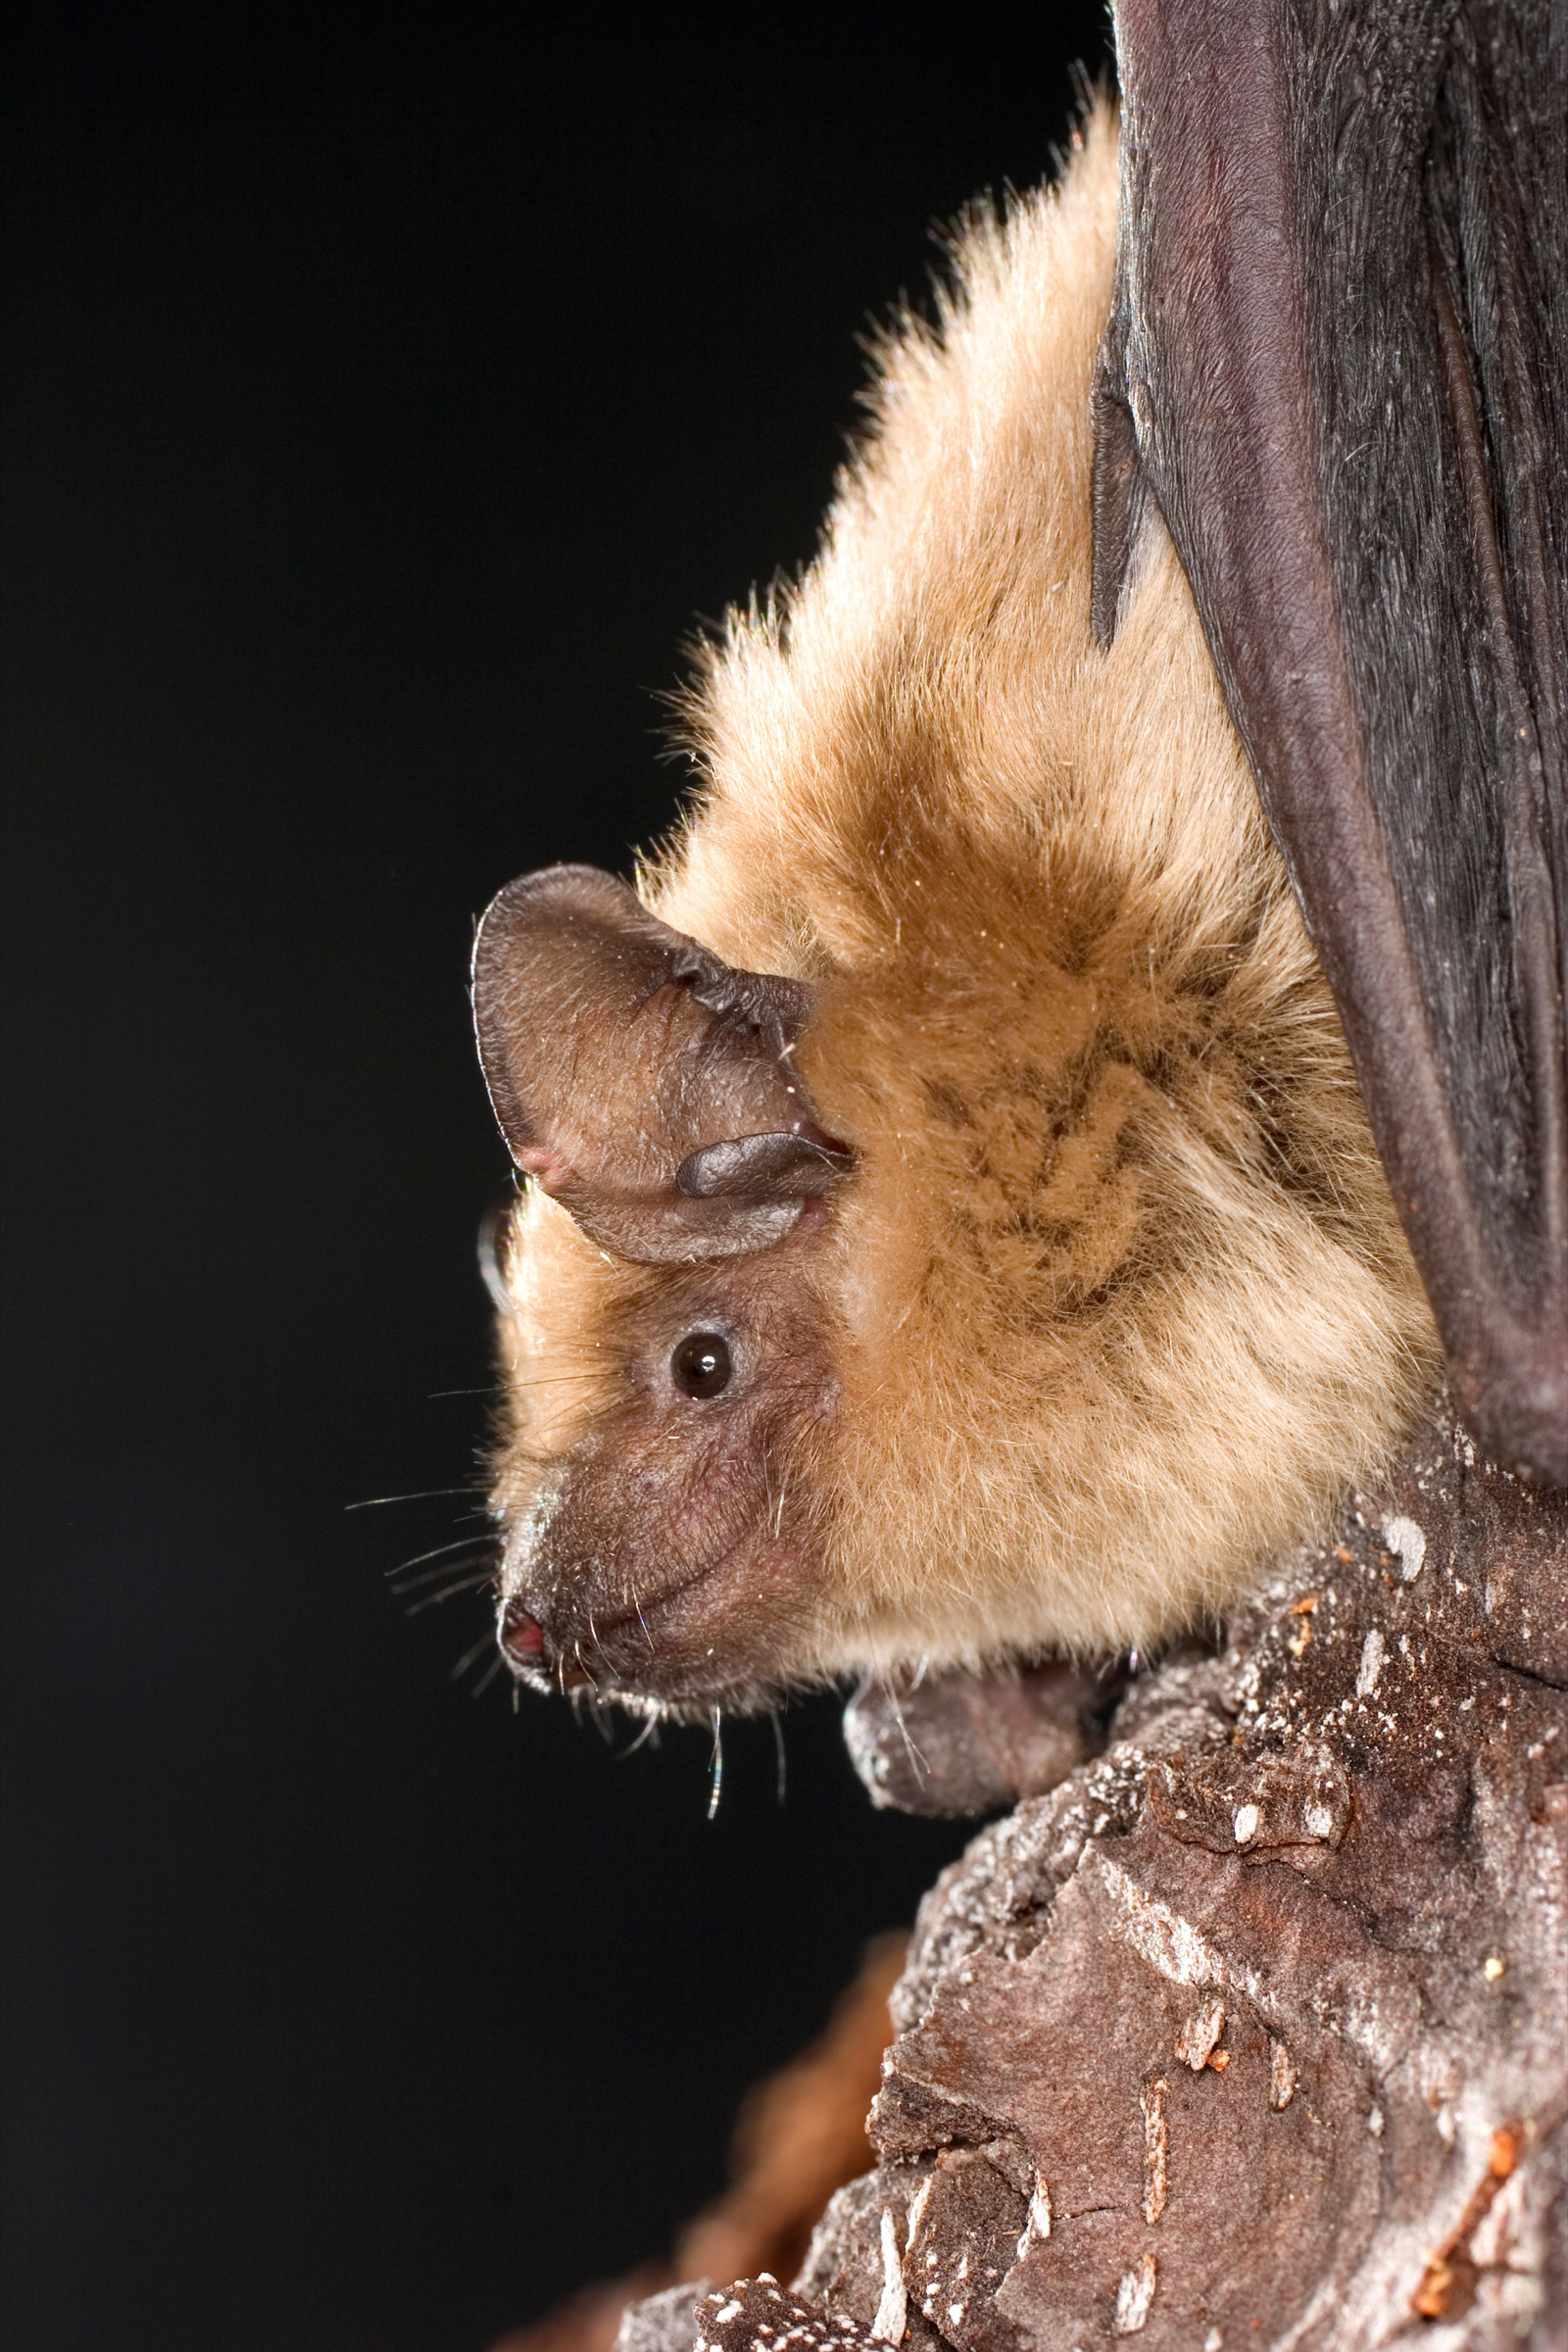 A healthy big brown bat (Eptesicus fuscus) clings to the wall of a cave in the Rogue River National Forest, Oregon. Photograph by Michael Durham